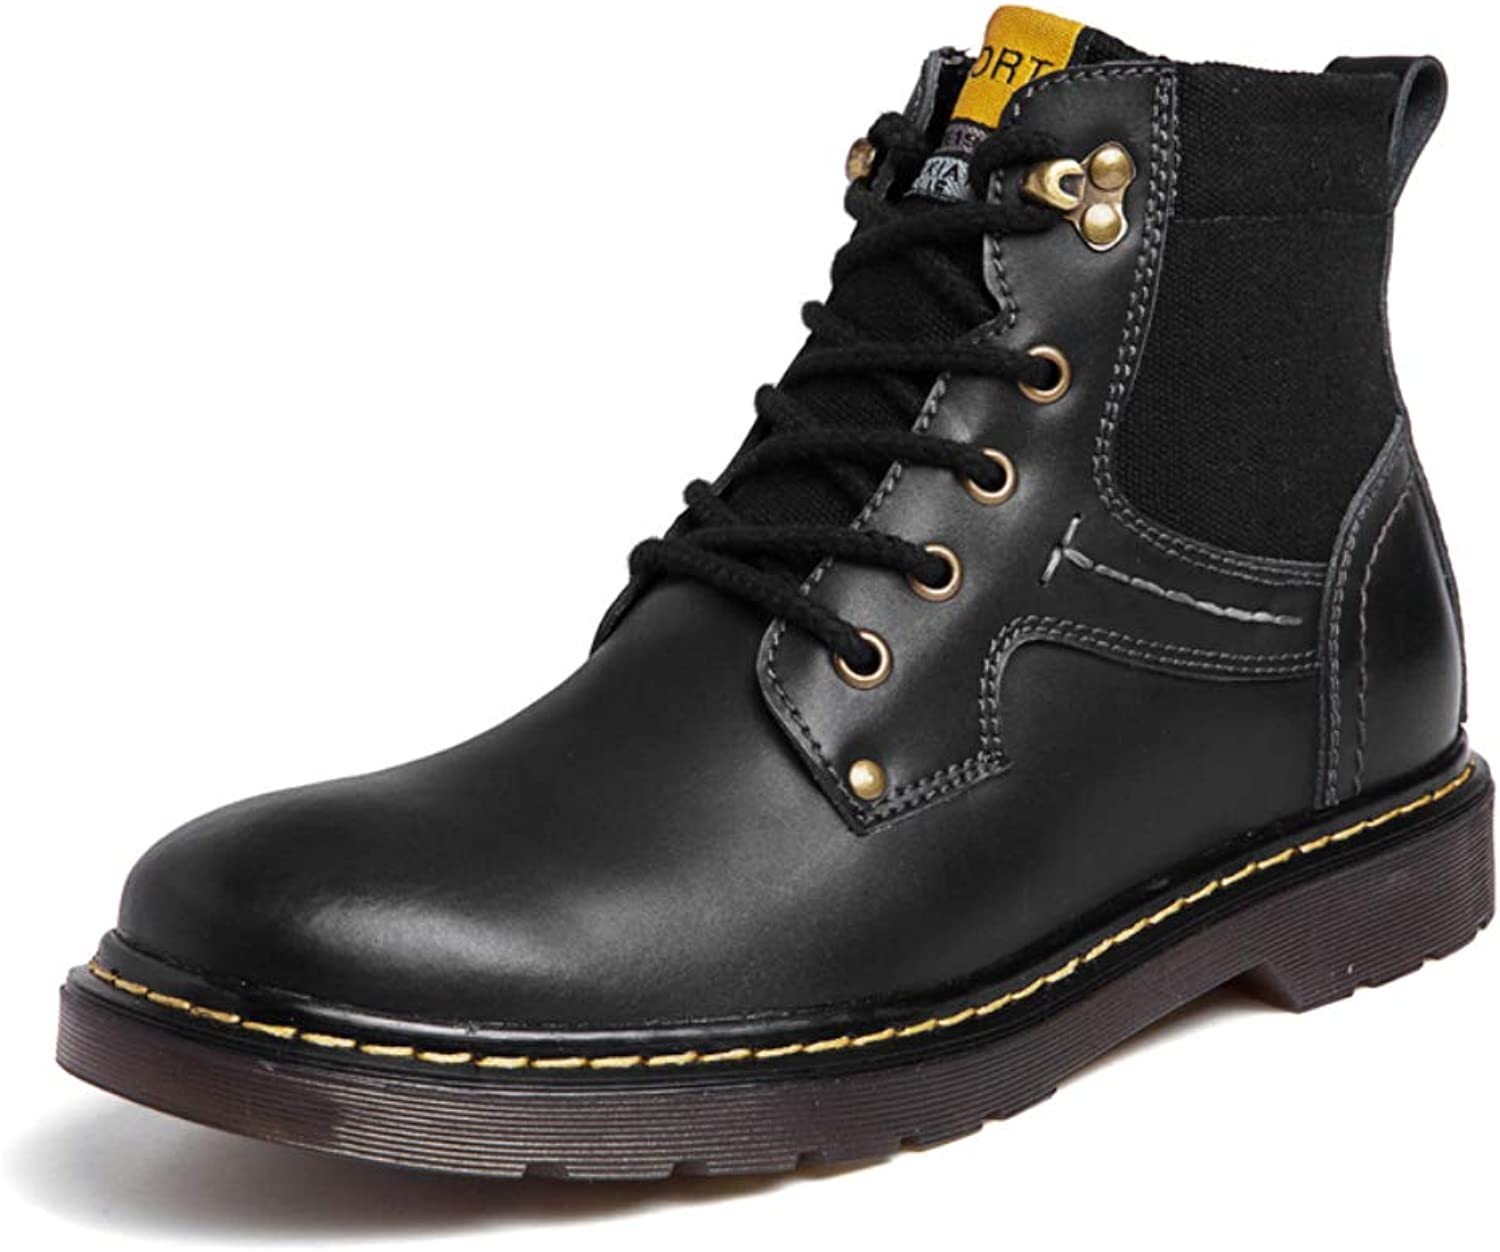 Men's Boots Zackery Classic Ankle Boots Winter Fur Lined Black Oxford Boots